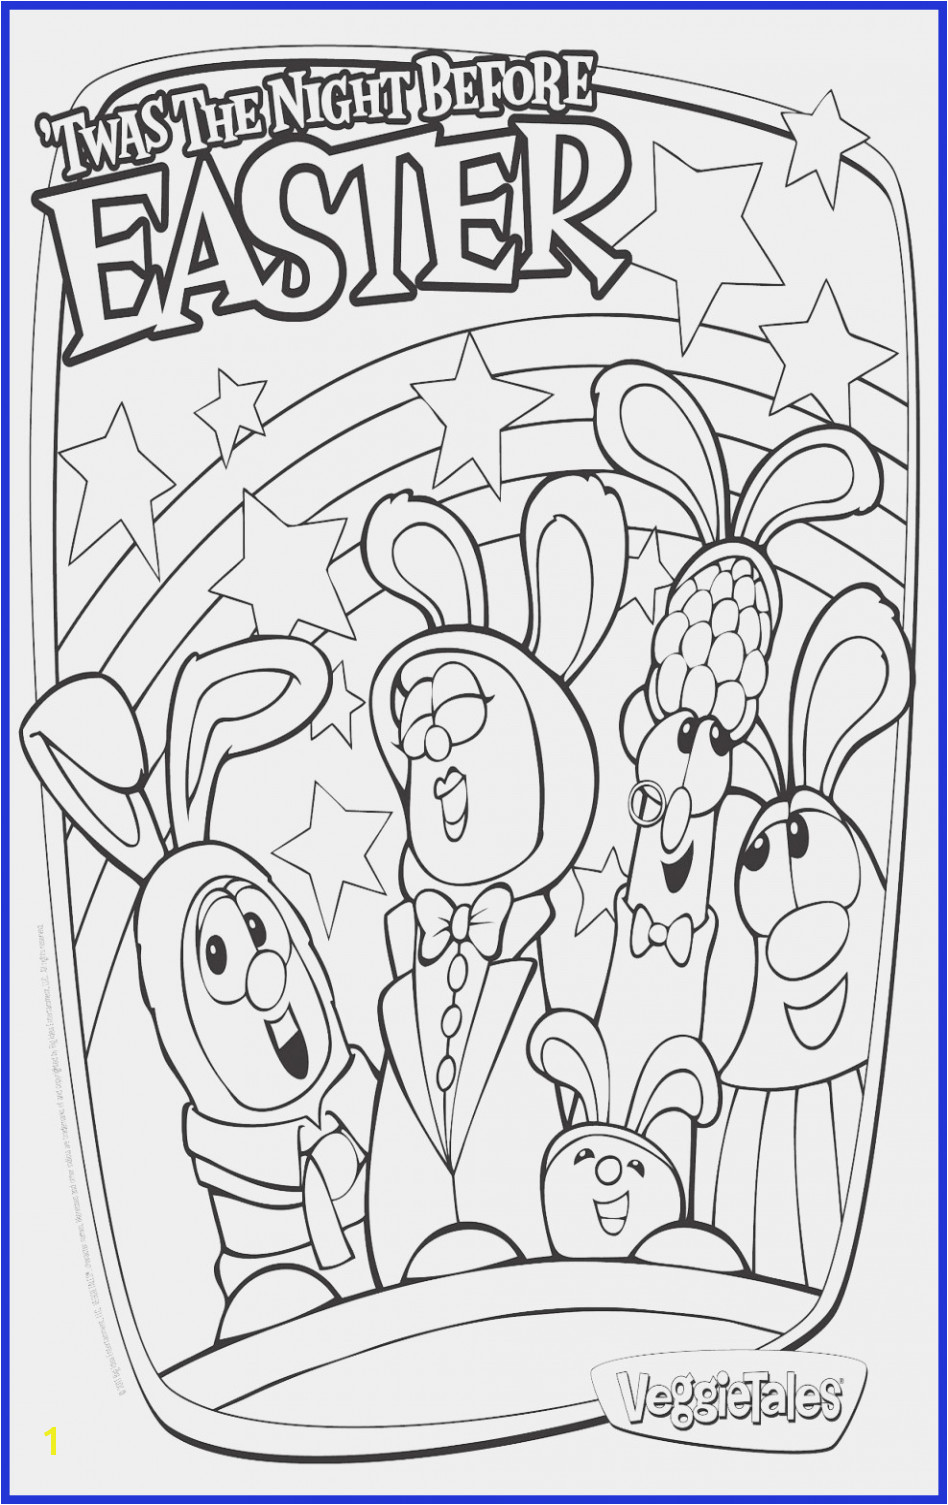 Thanksgiving Coloring Pages For Free Printable Happy Thanksgiving Coloring Page Fresh Cool Coloring Page Unique Witch